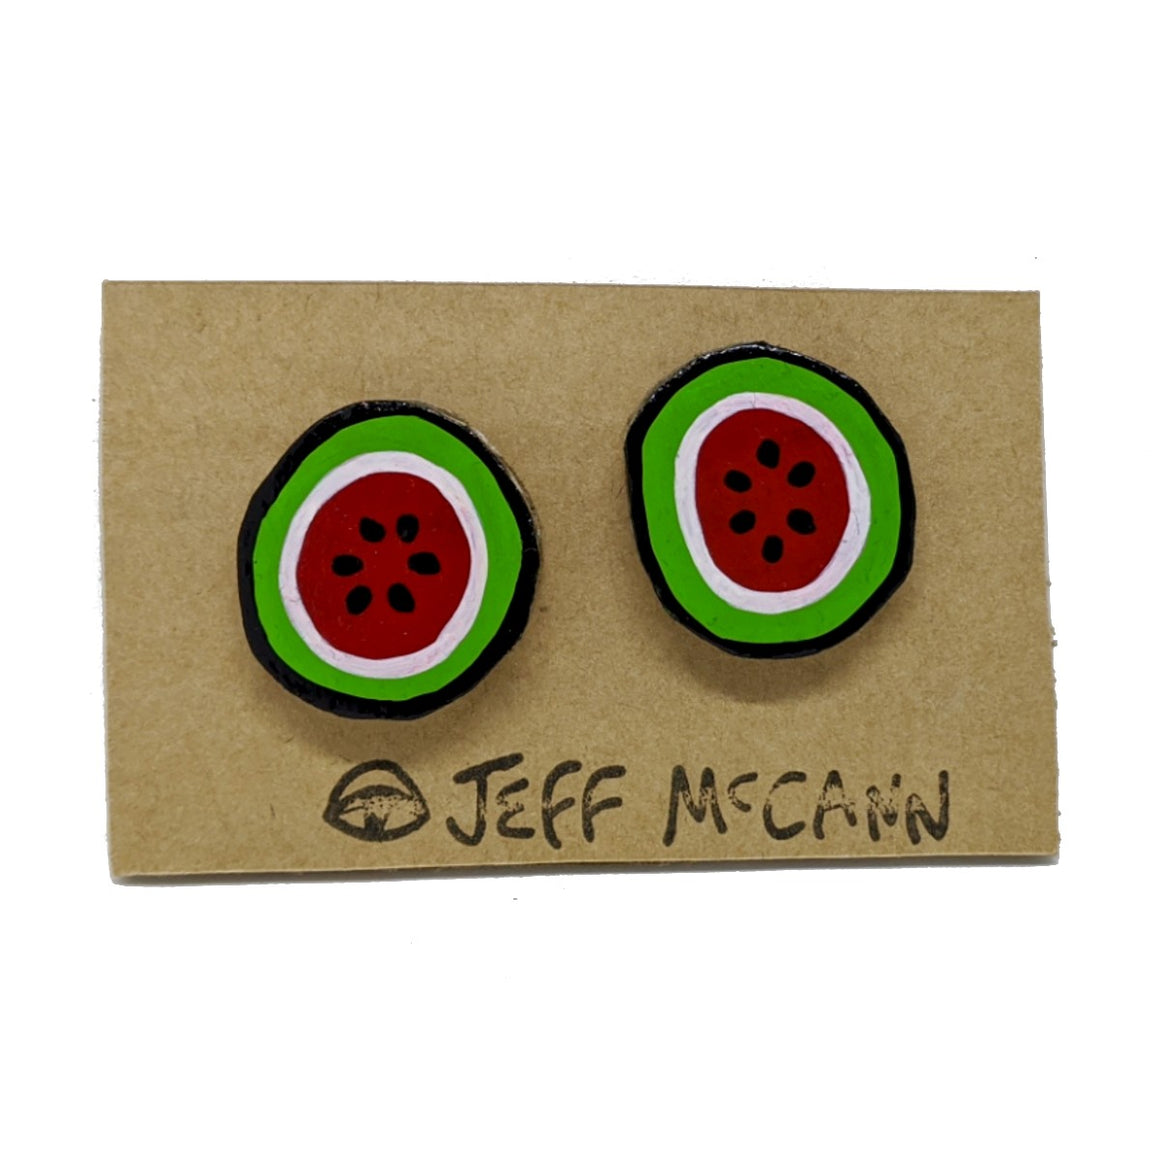 A Pair of stud Earrings made of hand painted cardboard. A design in the shape of a watermelon cut open - in red, green, white and black.